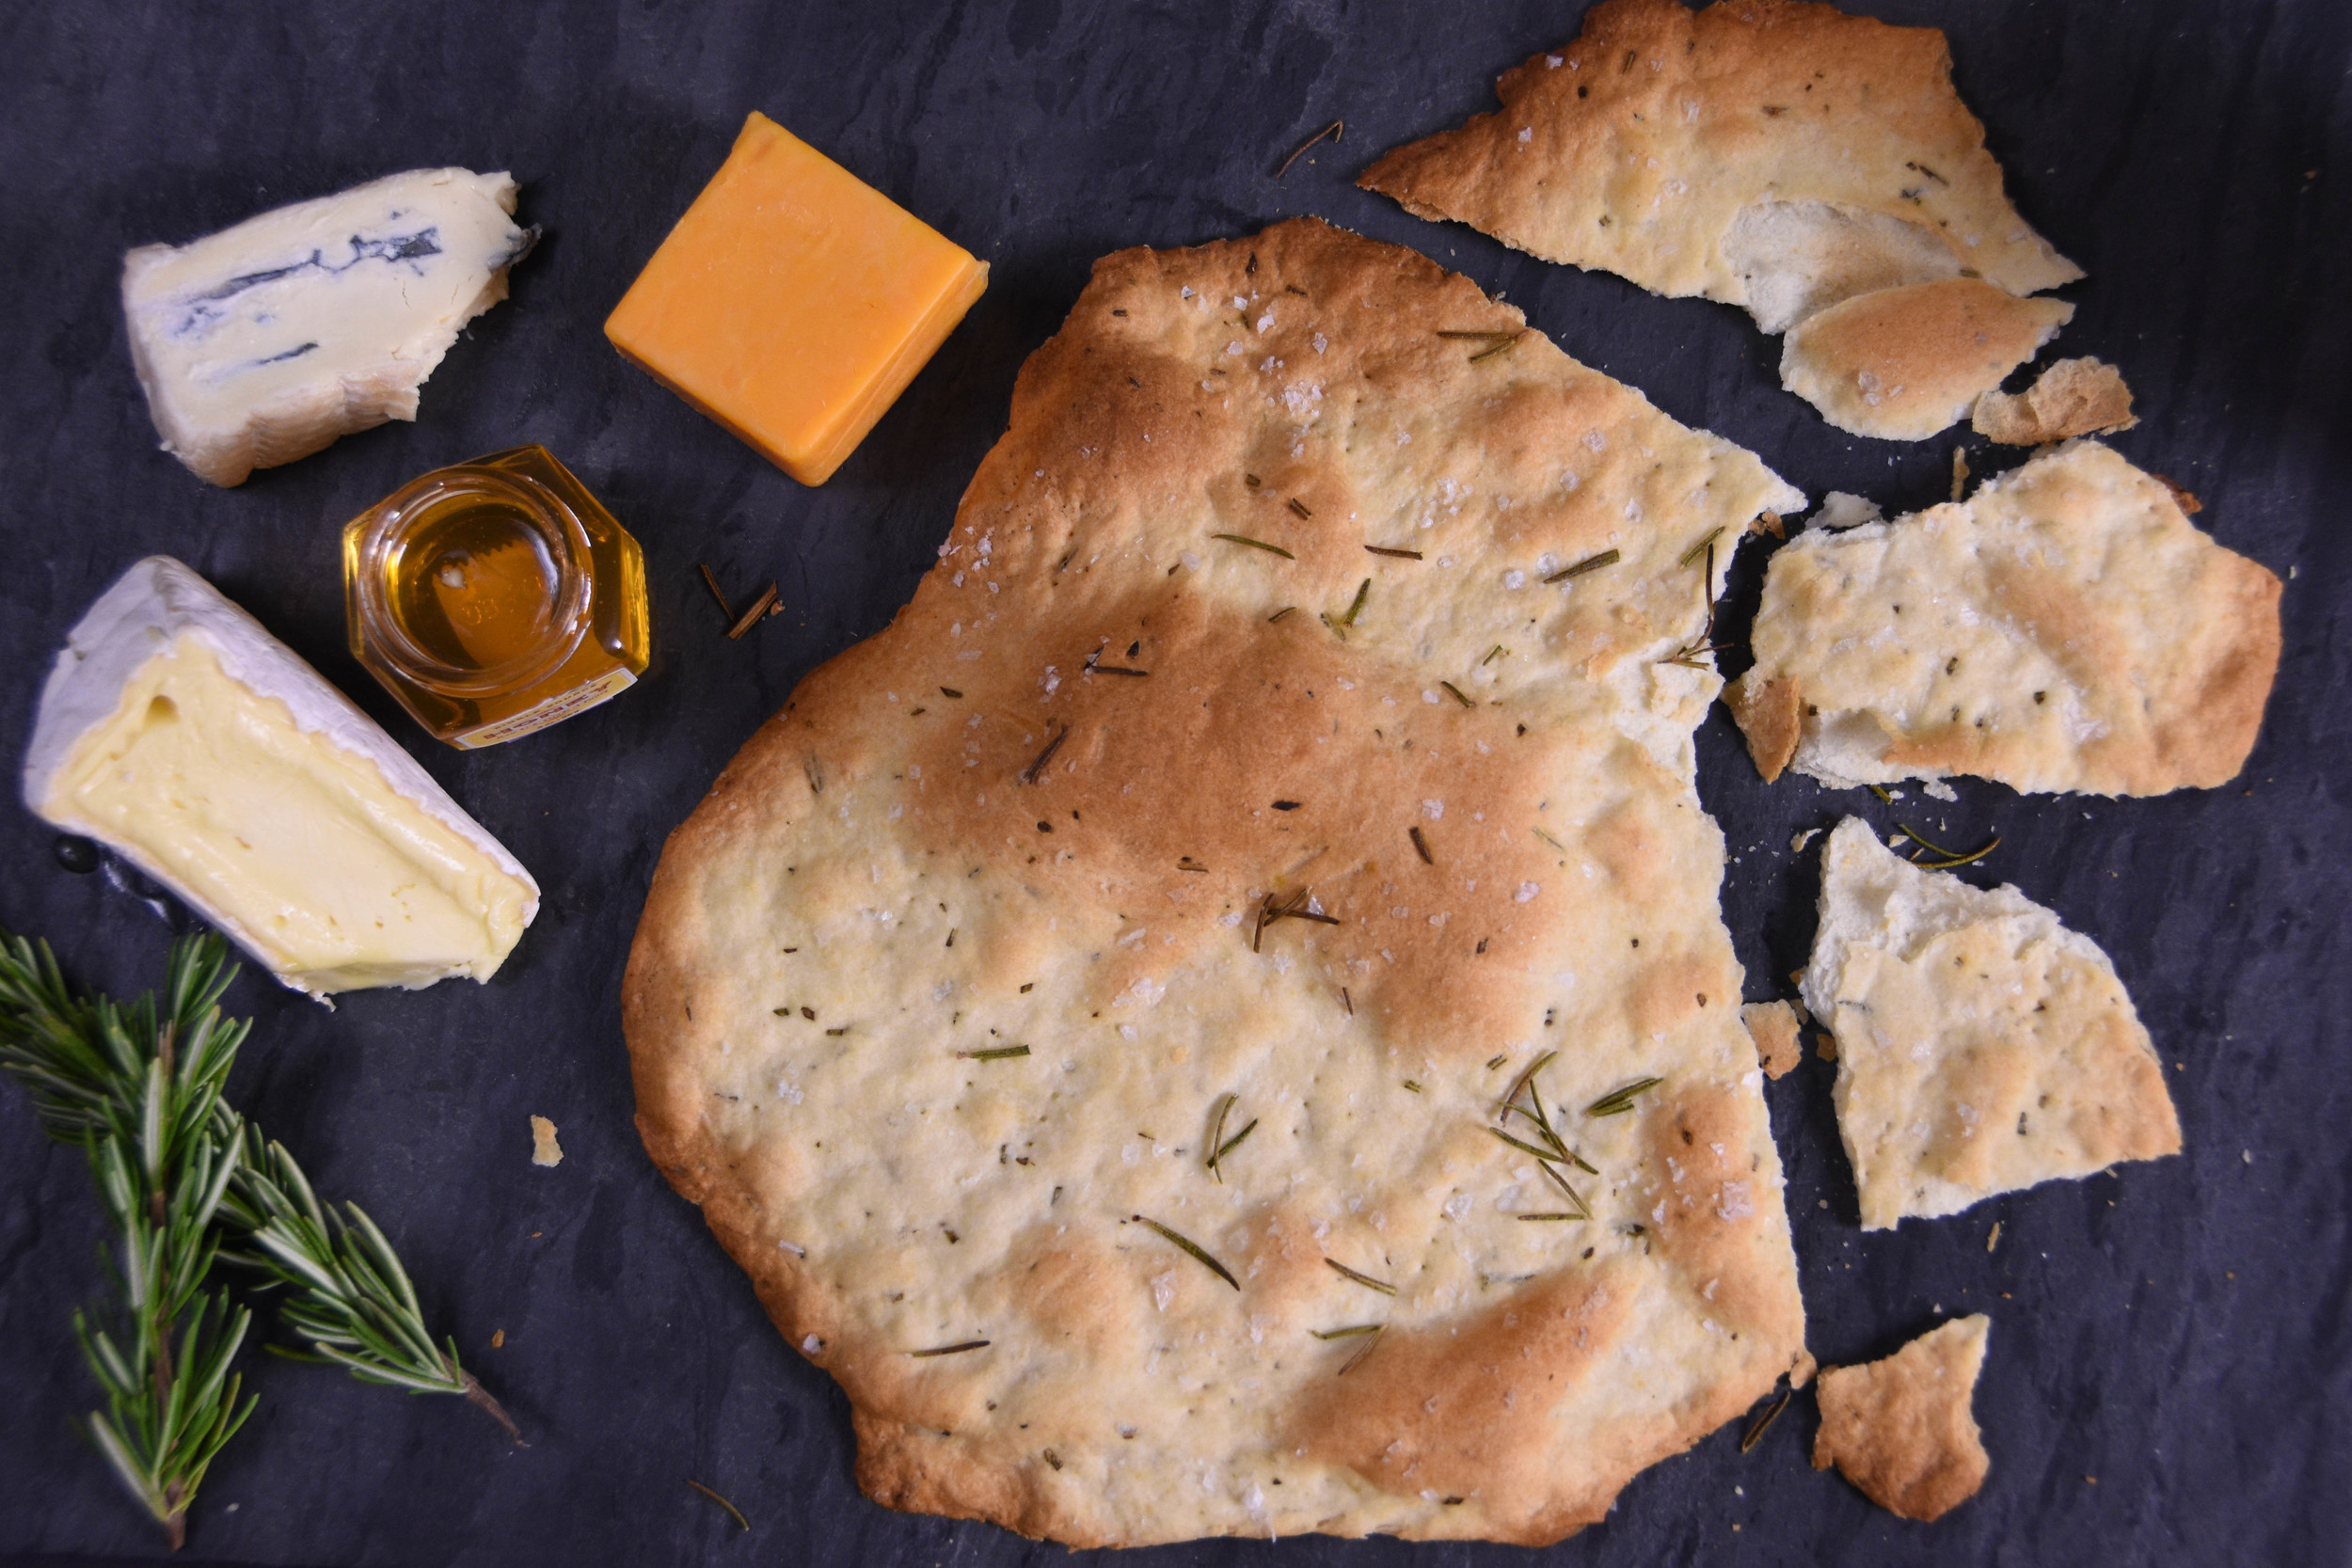 You only need 7 simple ingredients to make these amazing crackers: